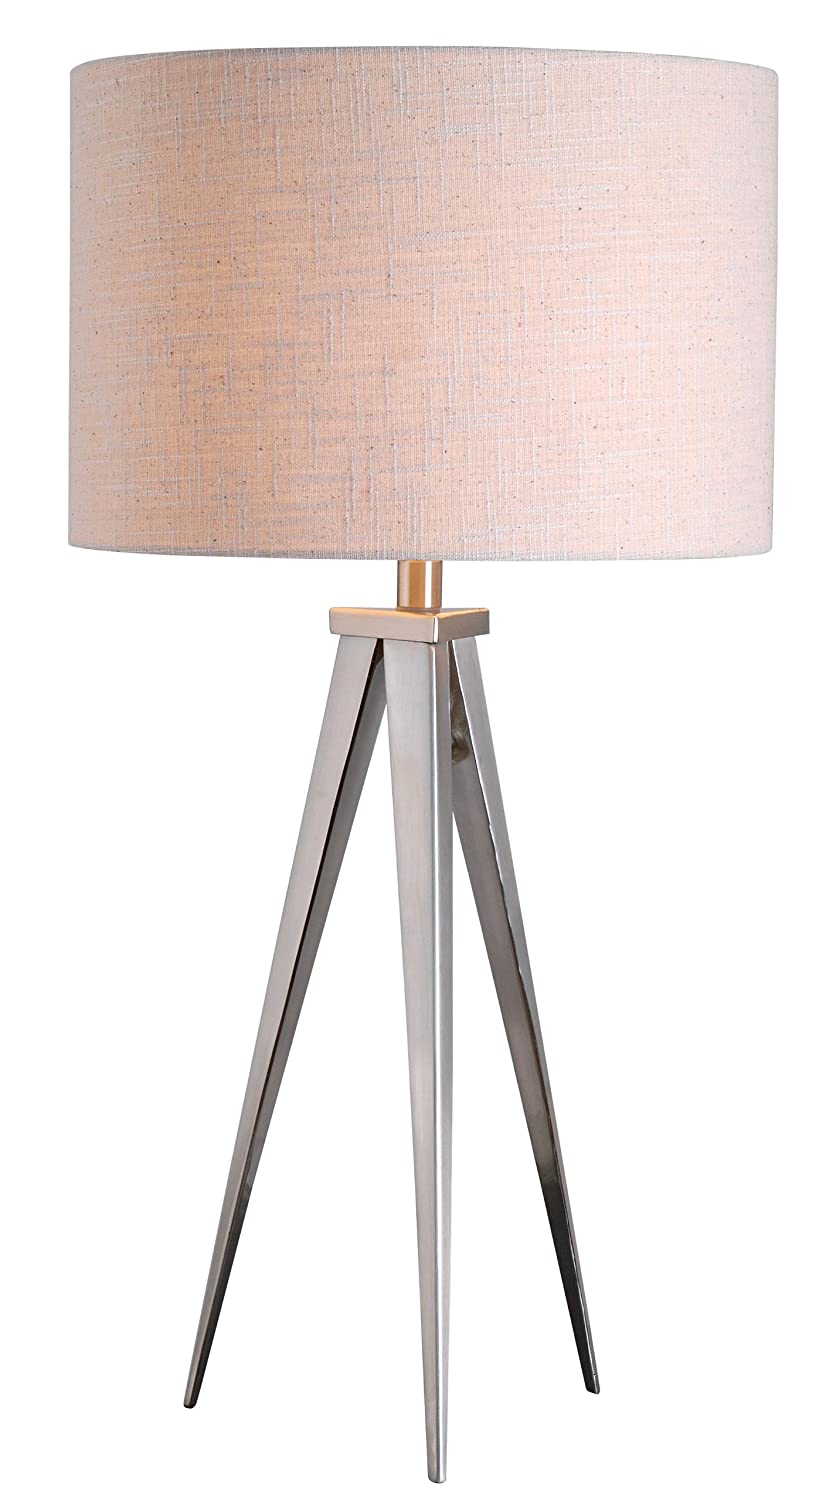 """Kenroy Home 32262BS Foster Table Lamp, 15"""" x 15"""" x 29"""", Brushed Steel Finish"""